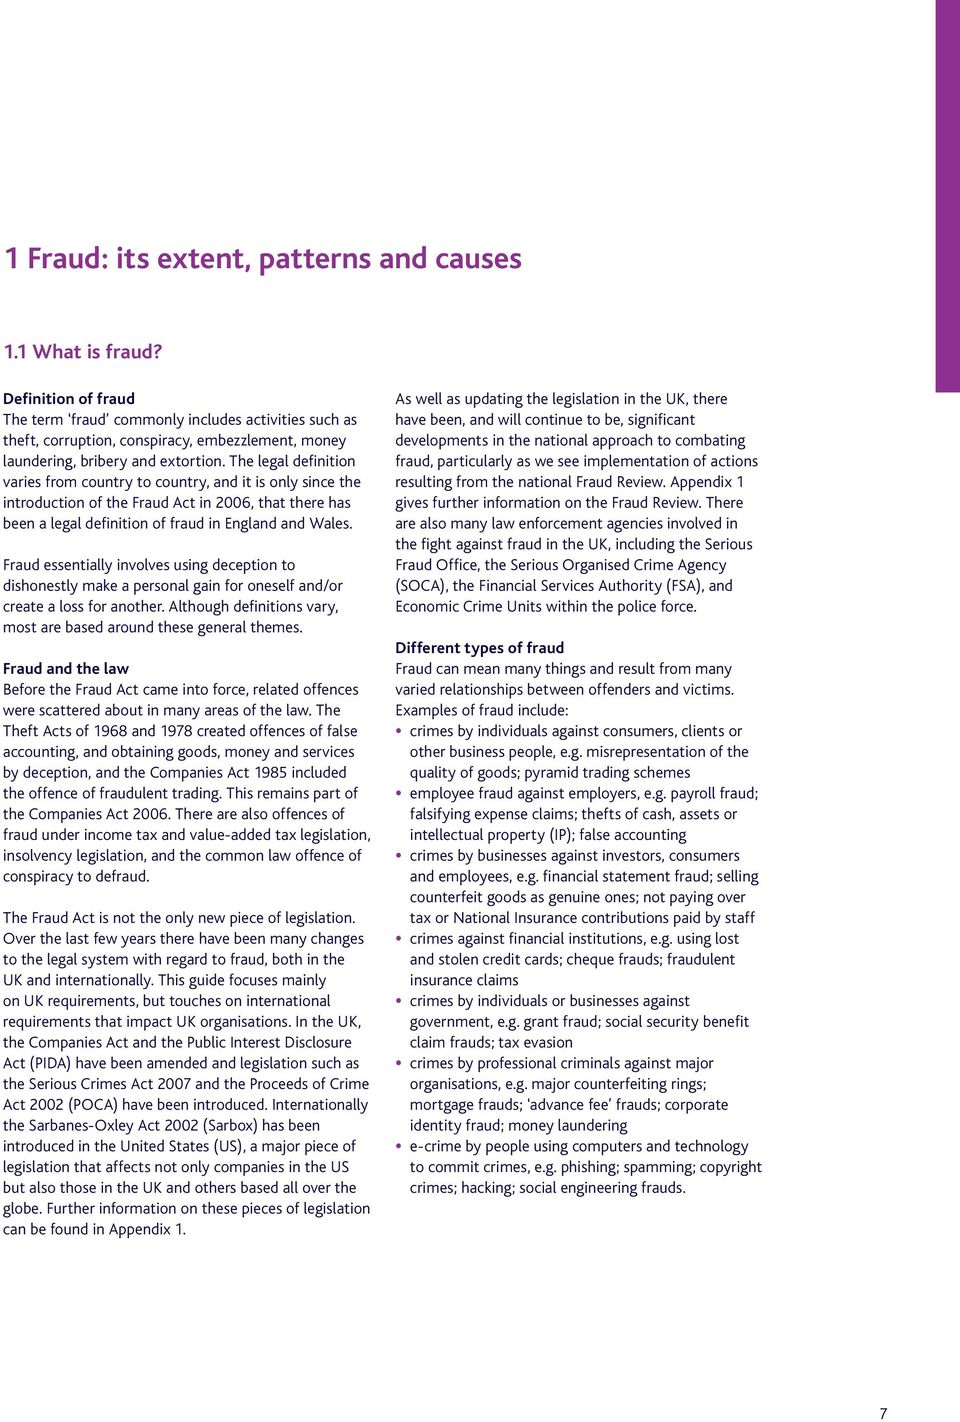 The legal definition varies from country to country, and it is only since the introduction of the Fraud Act in 2006, that there has been a legal definition of fraud in England and Wales.